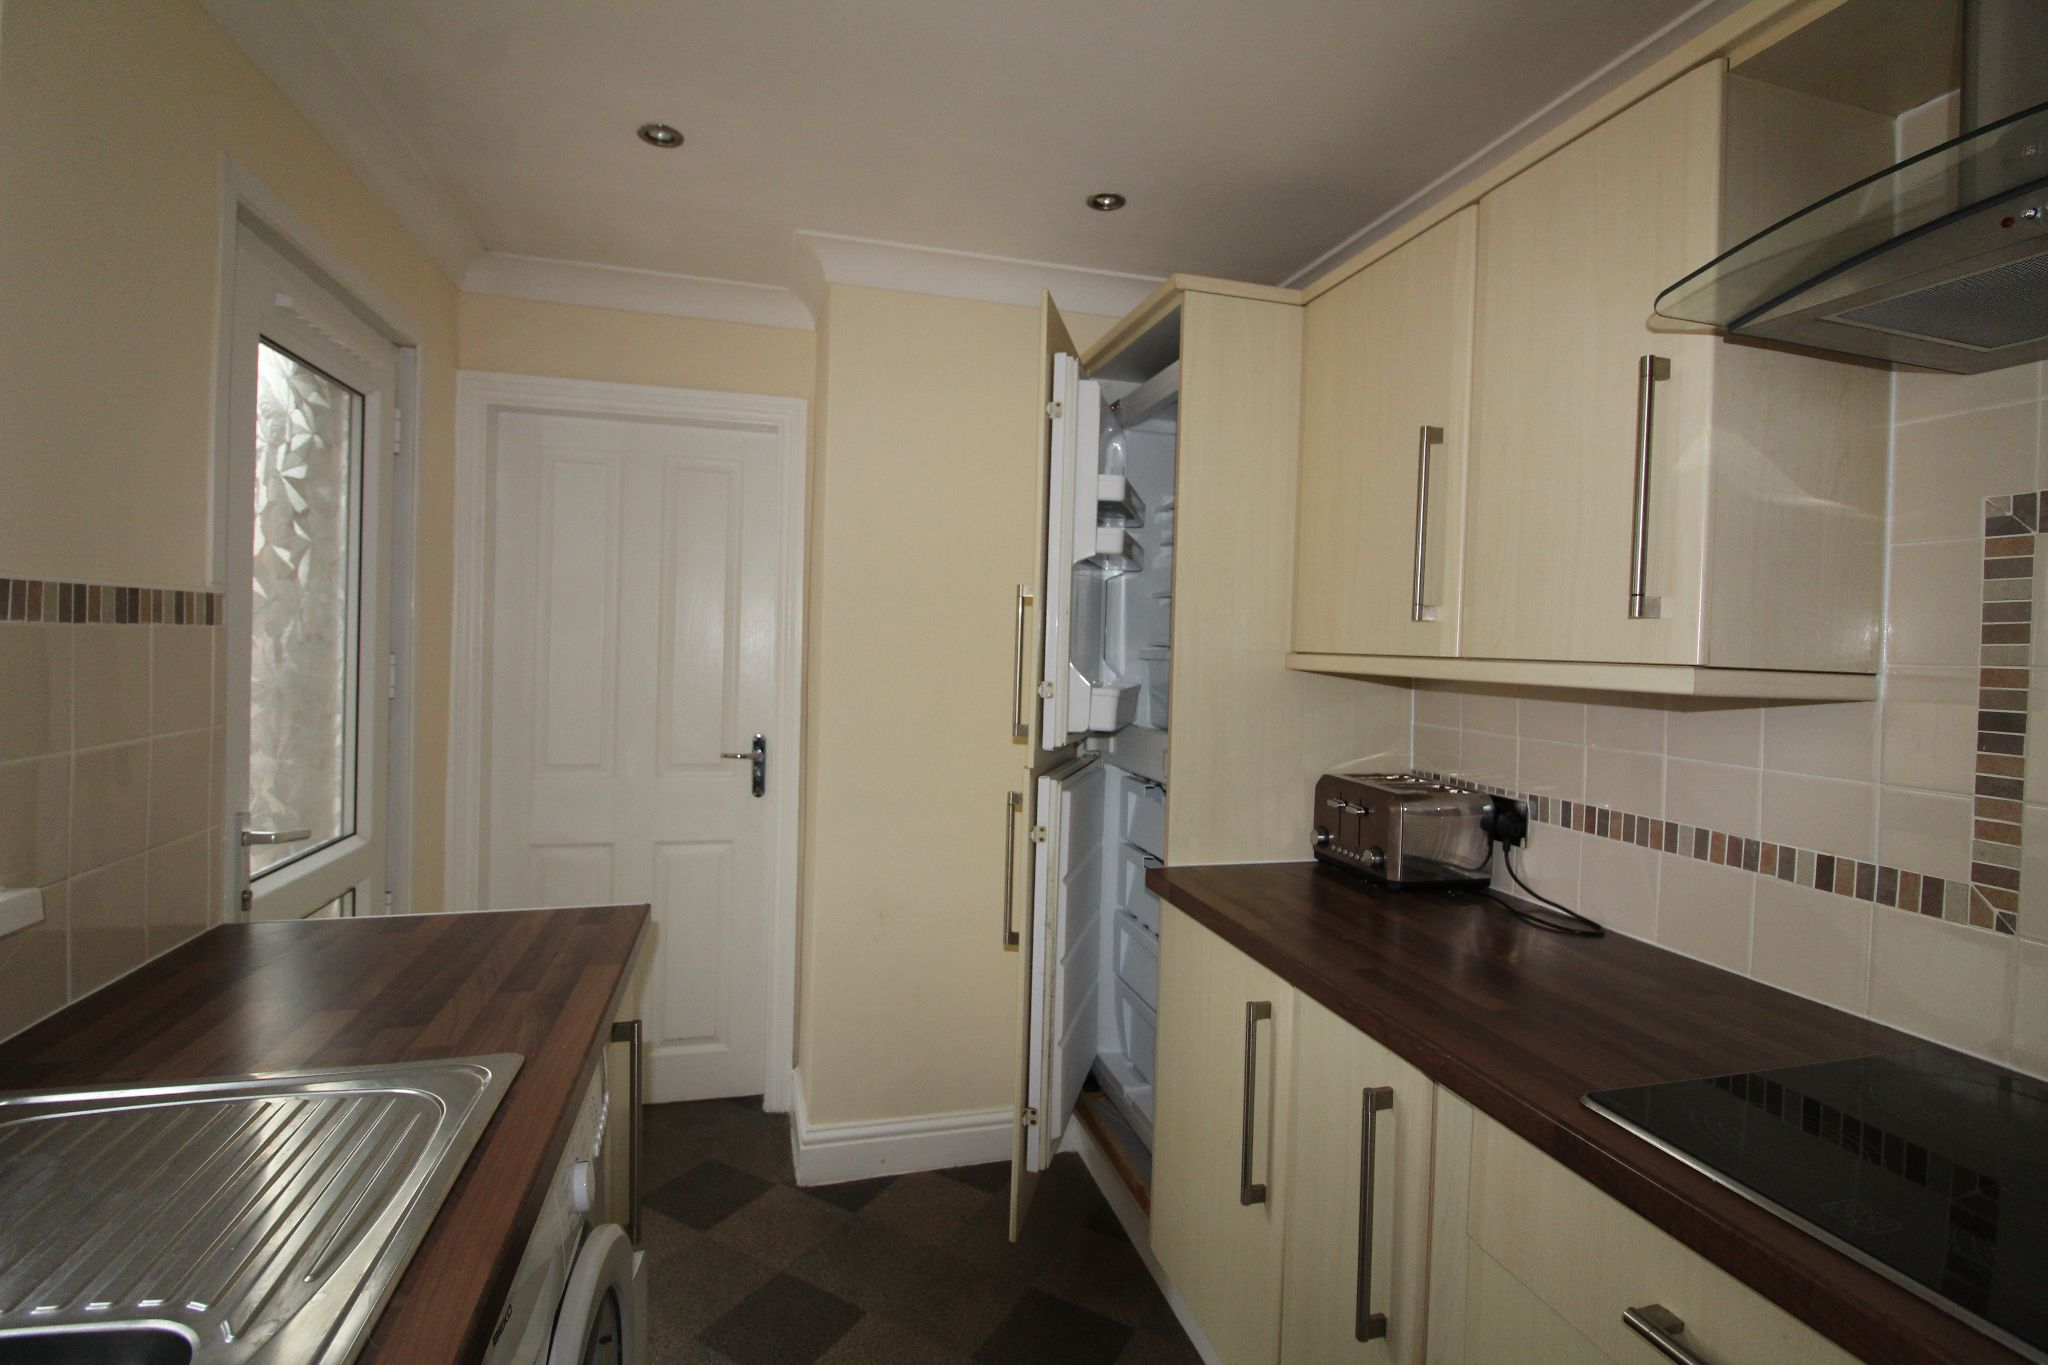 3 bedroom mid terraced house For Sale in Crook - Photograph 14.